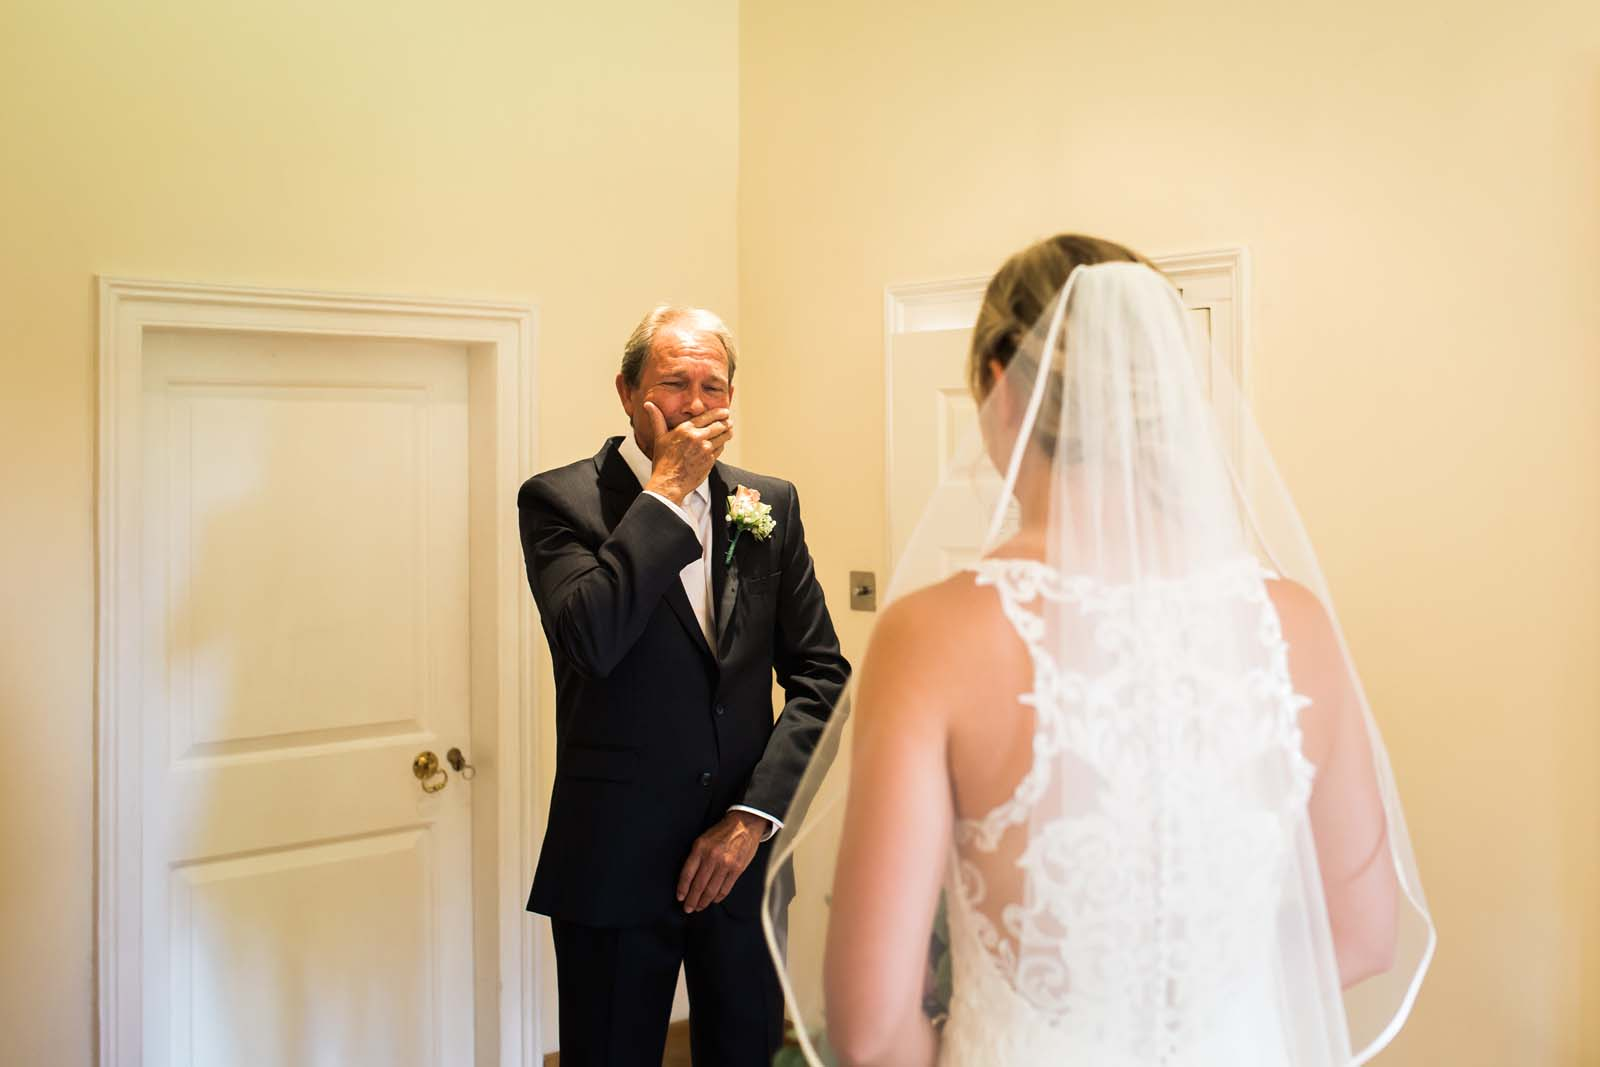 Notley Abbey wedding in Buckinghamshire Father of the Bride sees her for the first time